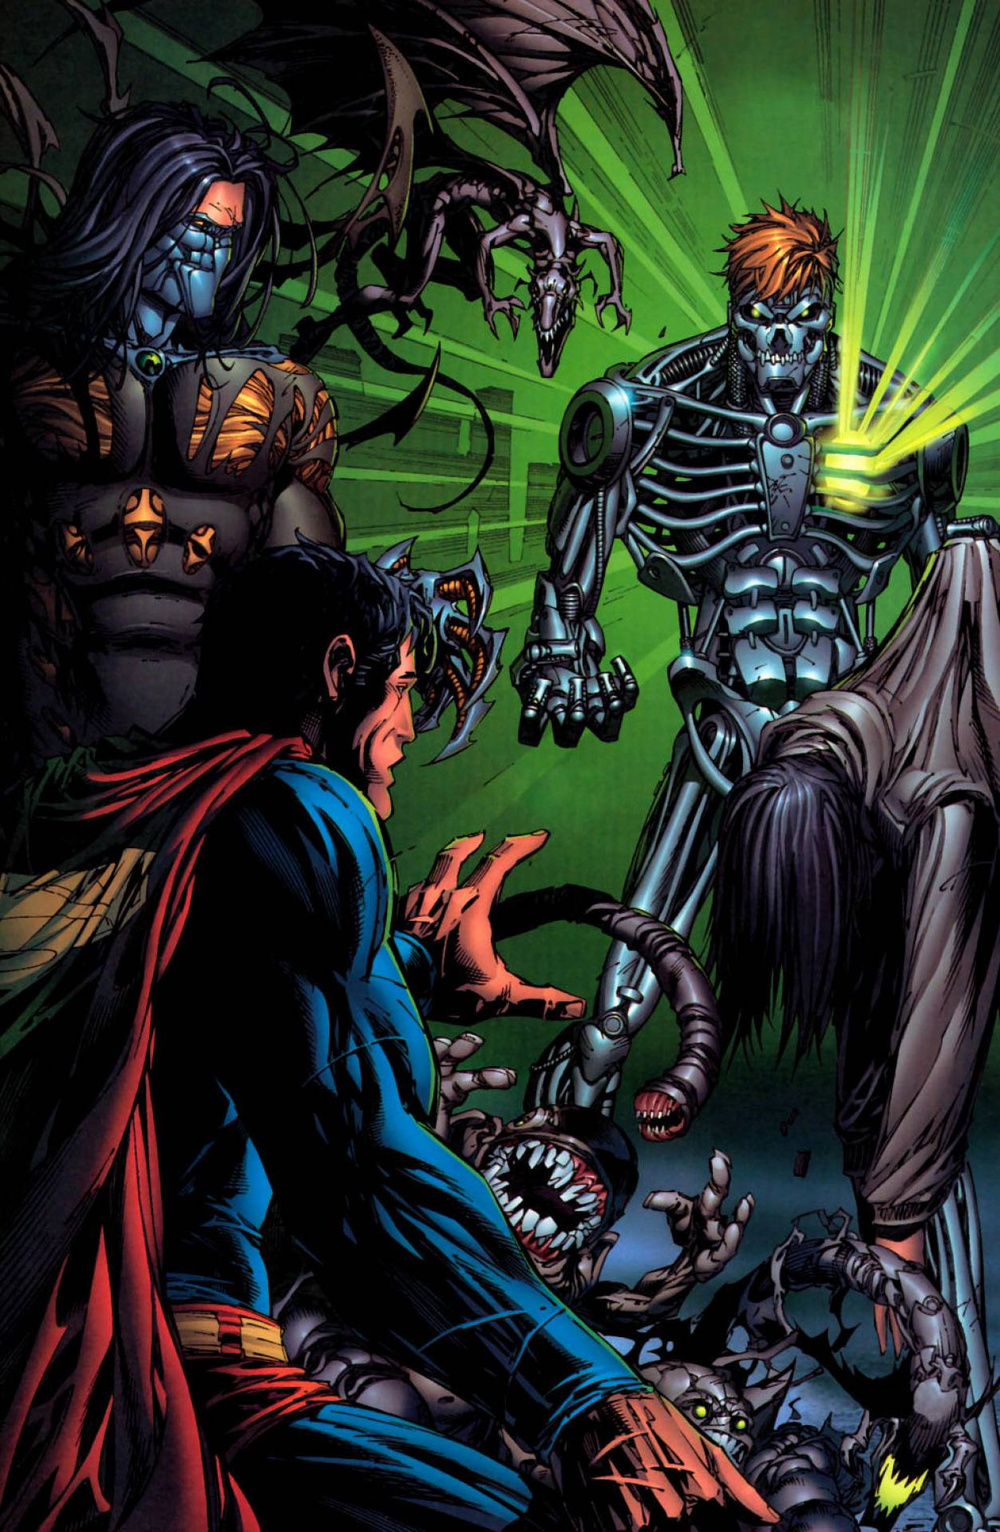 will-batman-vs-superman-villain-be-metallo.jpg